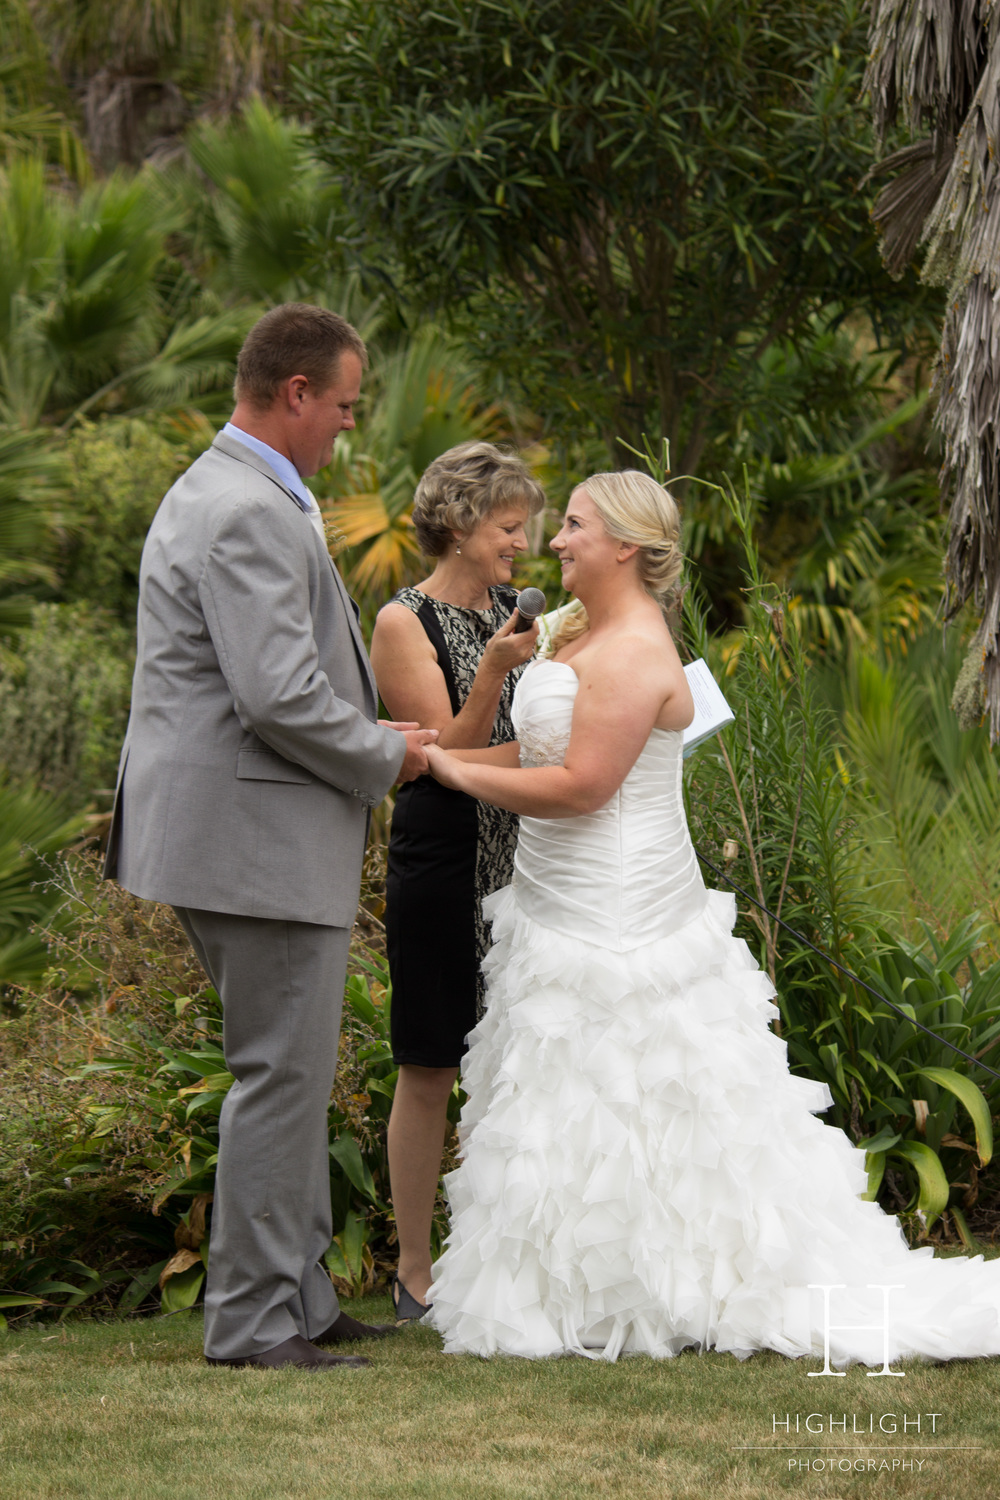 highlight_photography_wedding_new_zealand_cormac.jpg